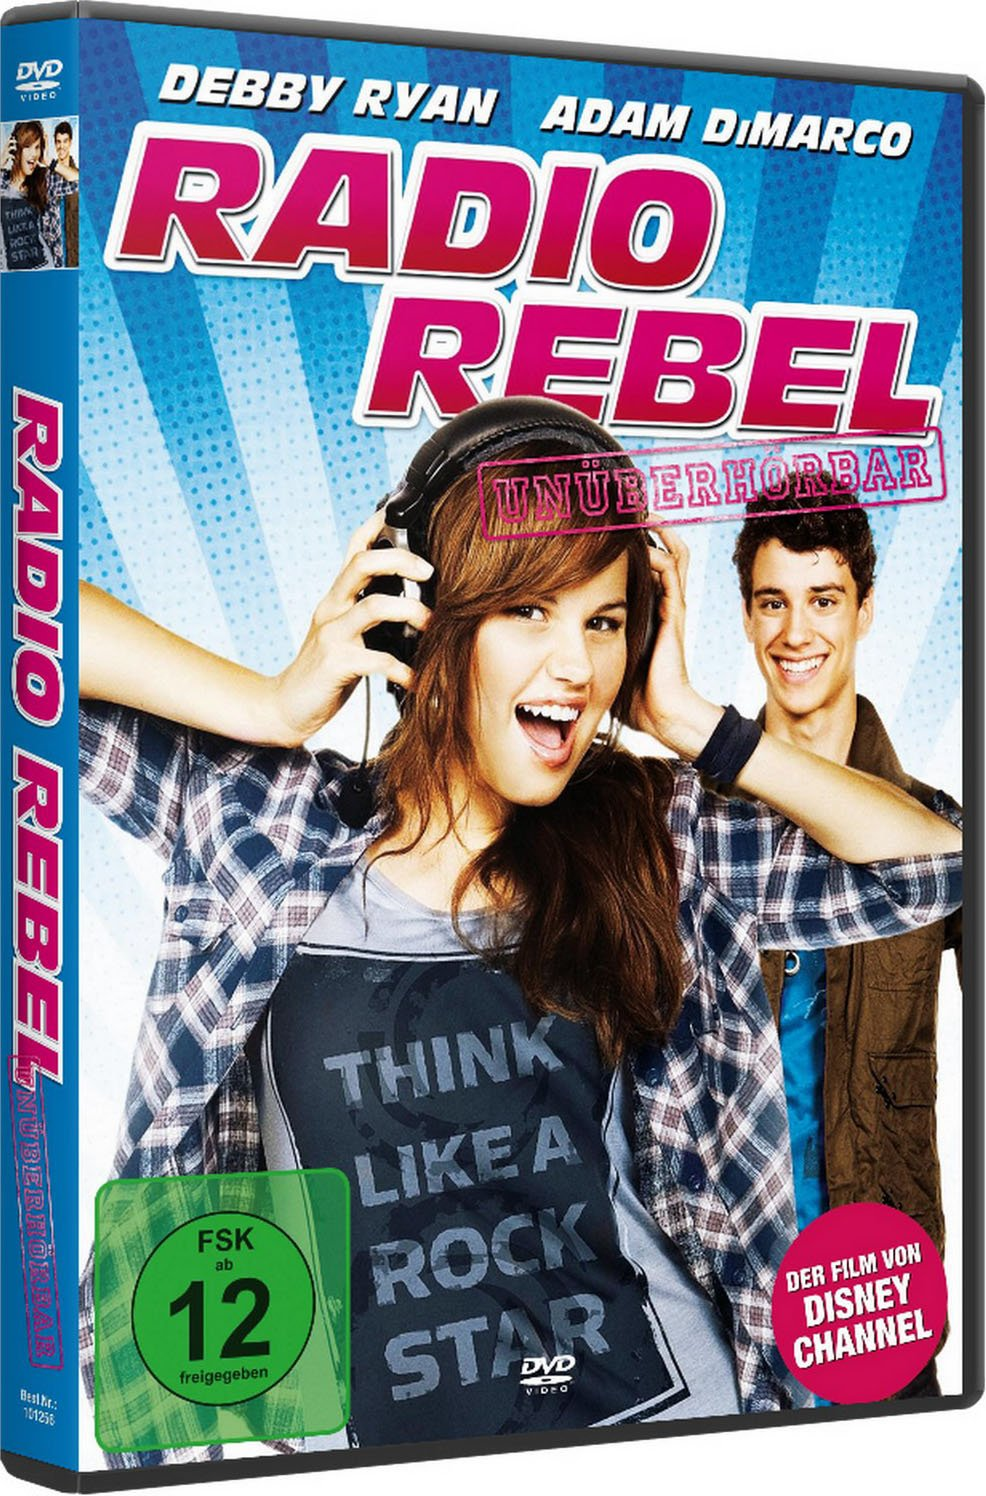 Radio Rebel - Unüberhörbar Disney Channel TV-Movie: Amazon.de: Debby ...